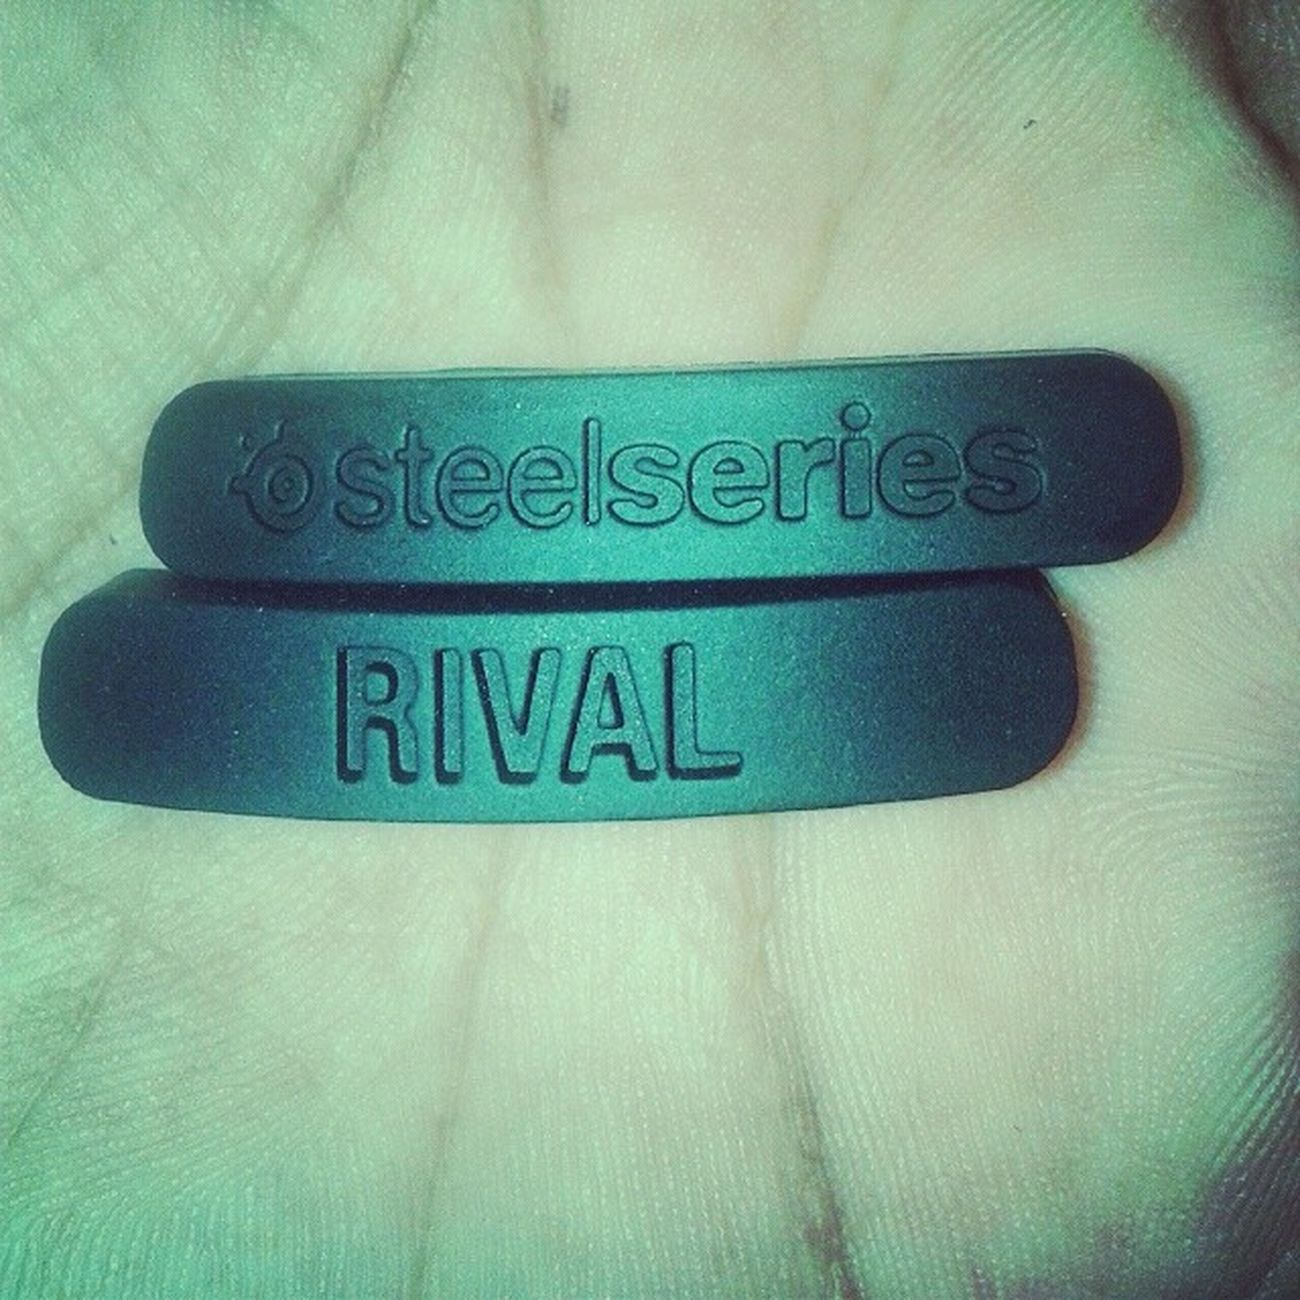 Nametag SteelseriesRival